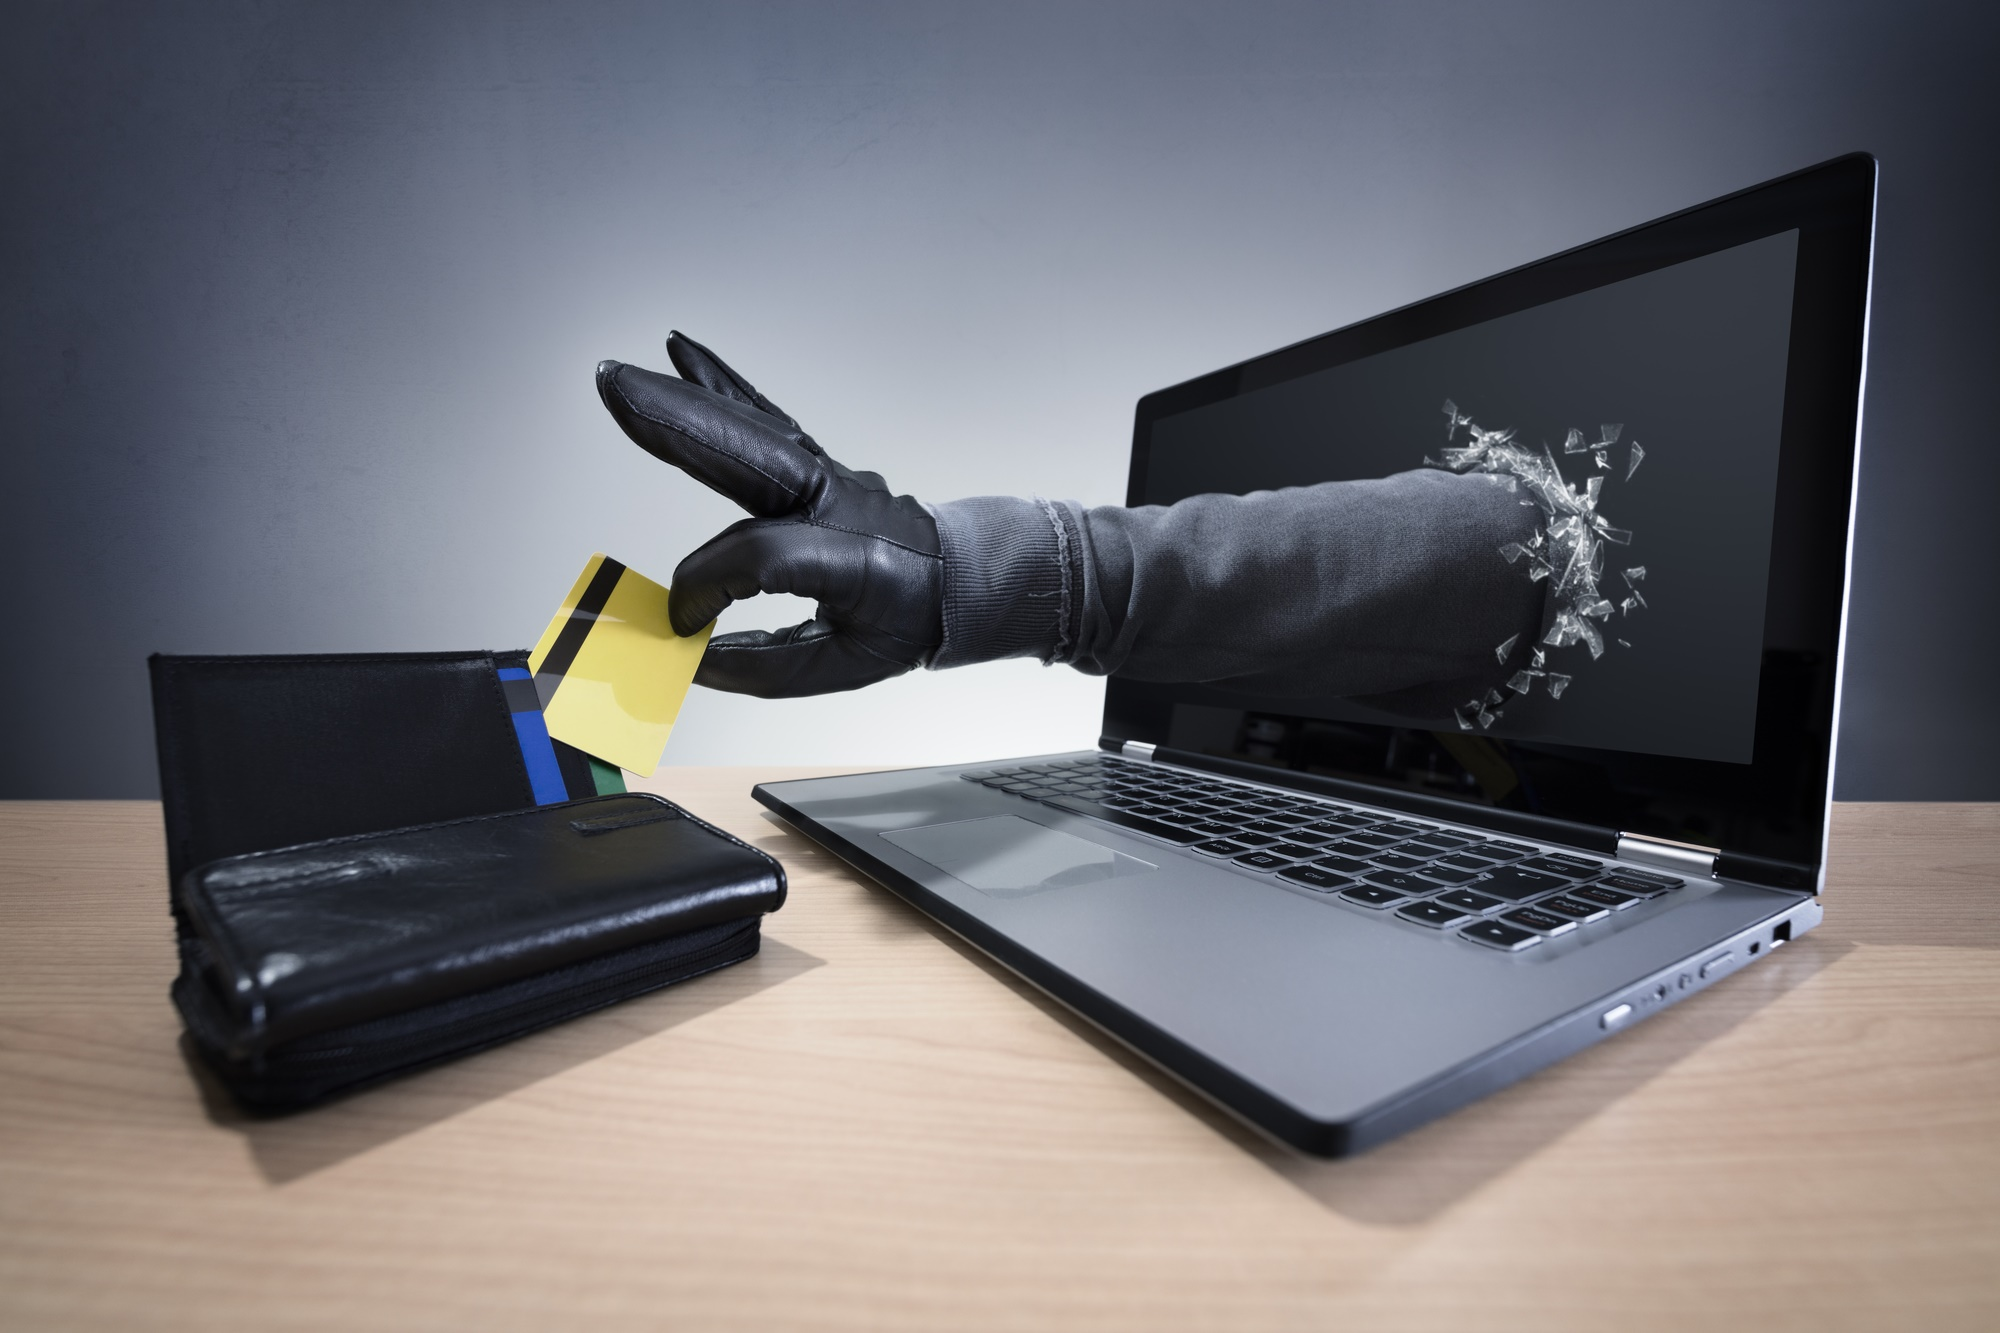 identity theft stealing credit card computer.jpg